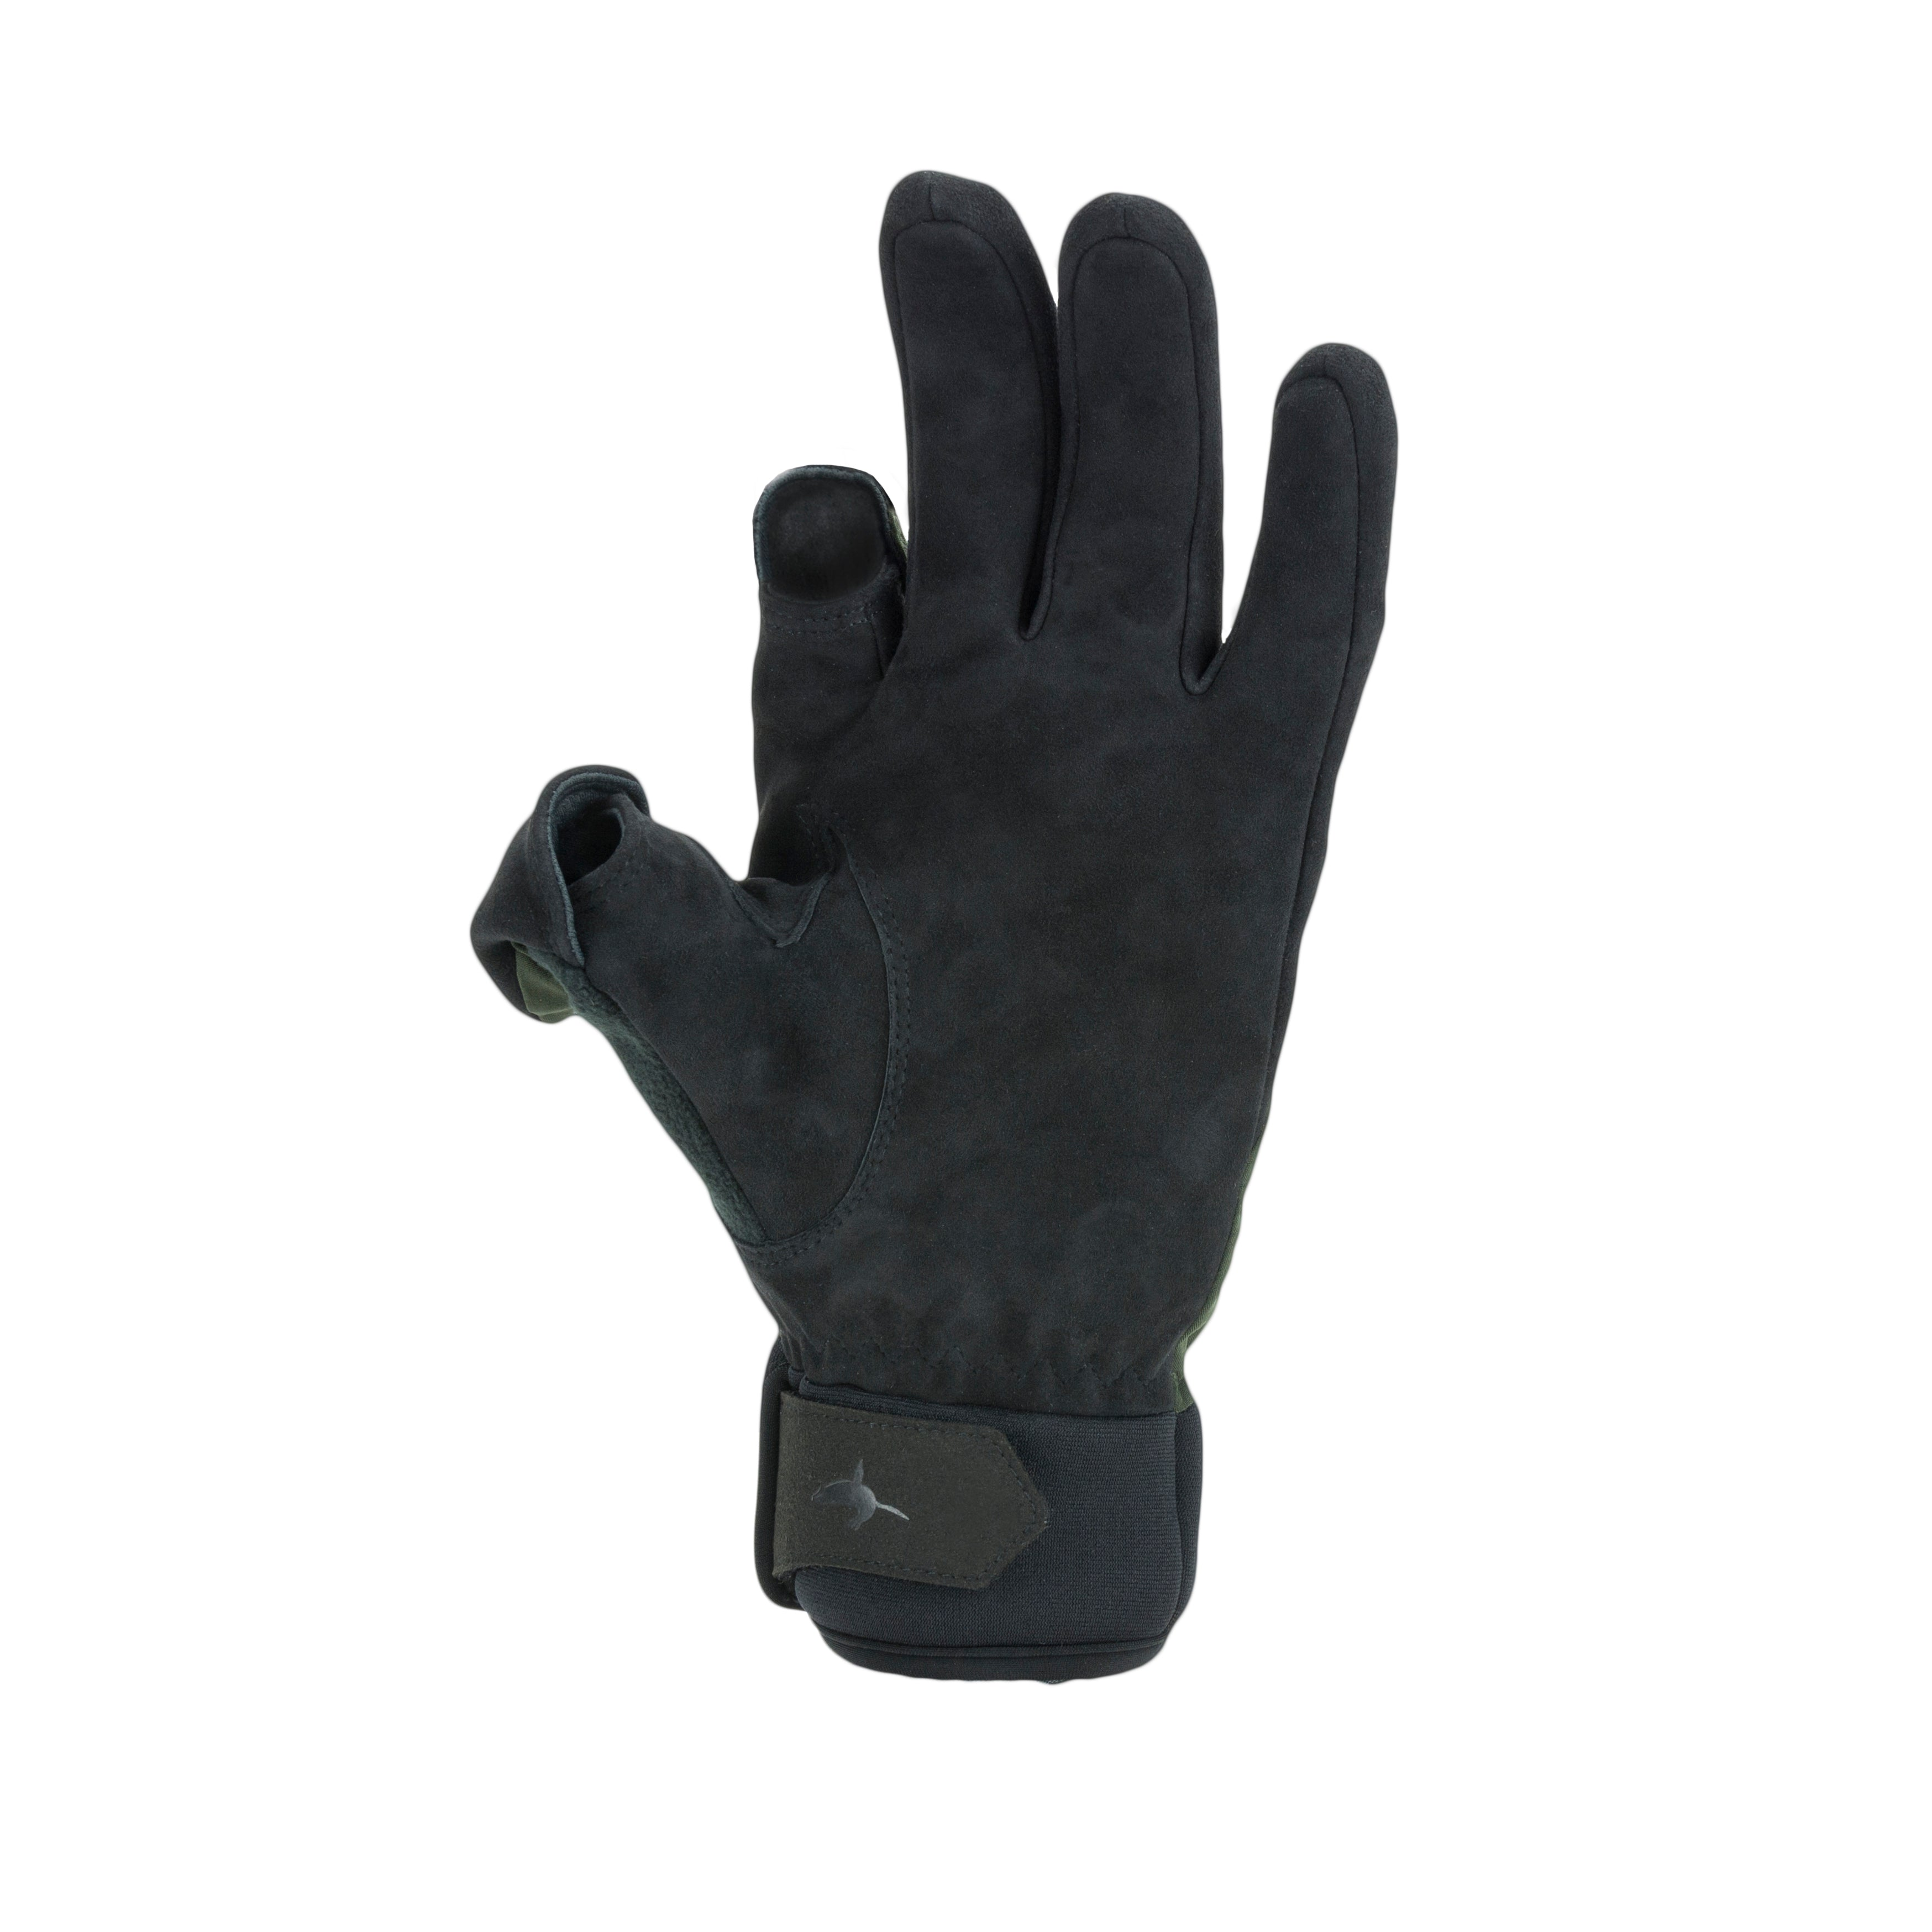 Waterproof All Weather Sporting Glove